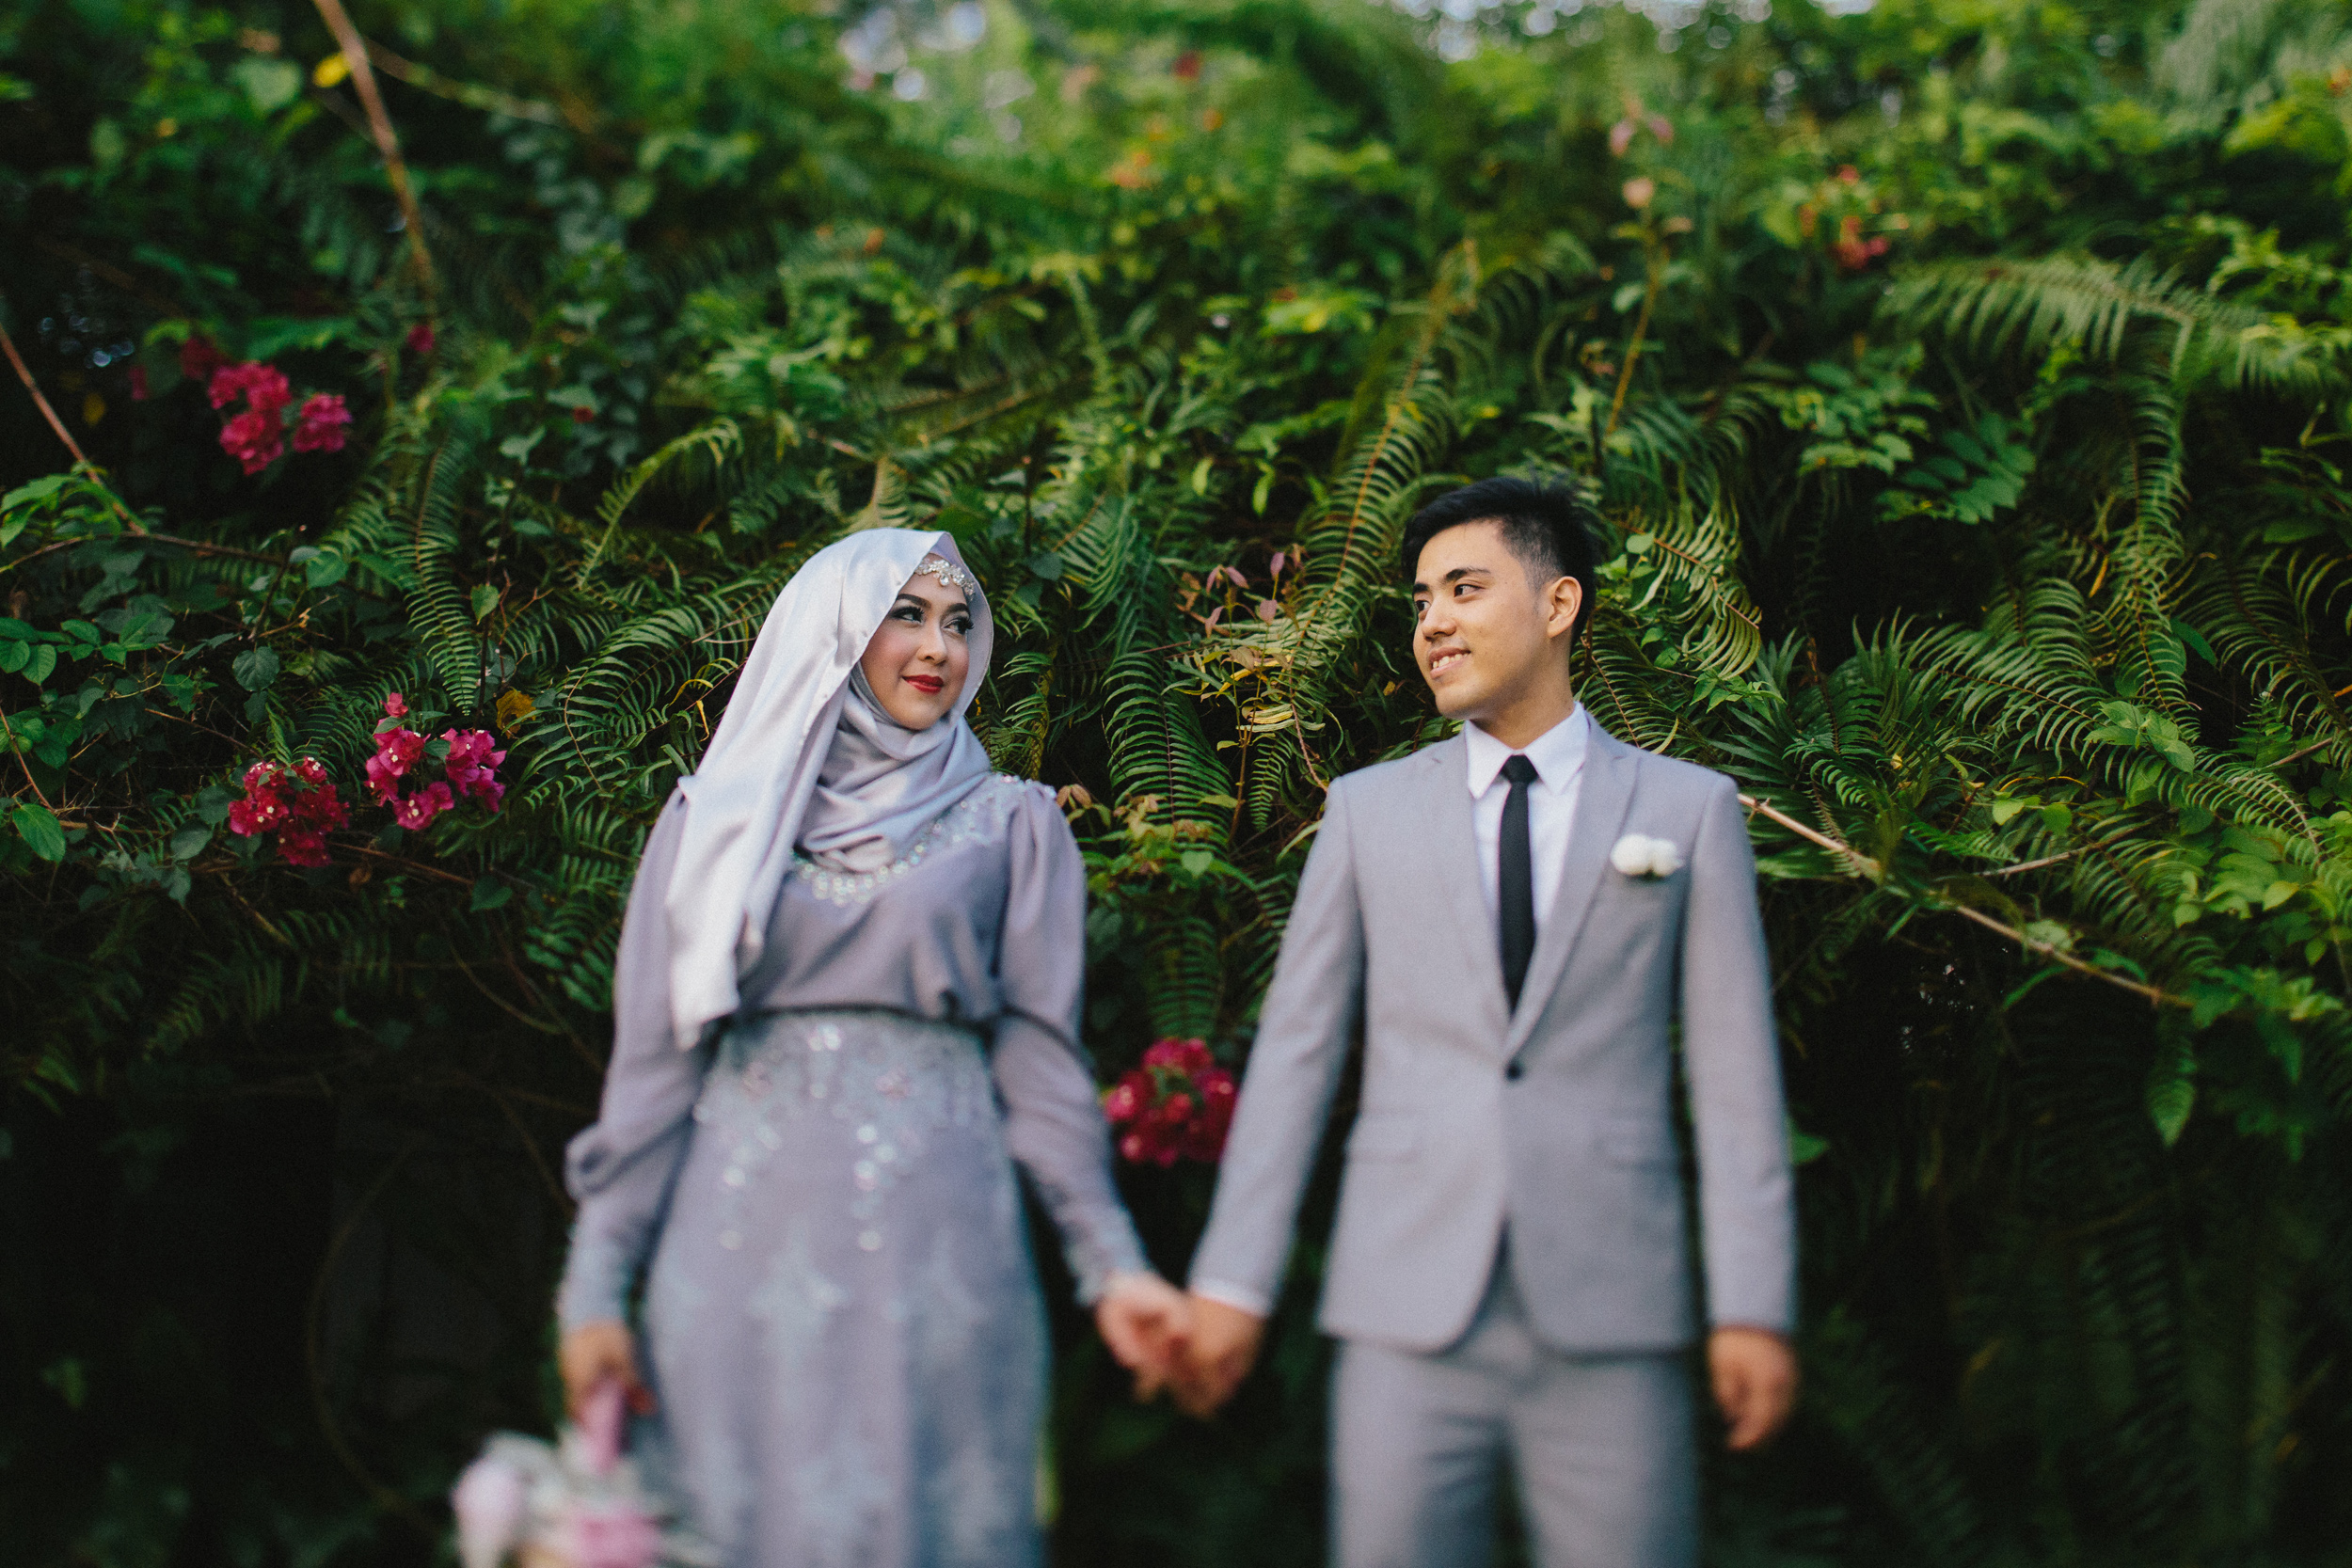 singapore-wedding-photographer-wemadethese-aisyah-helmi-60.jpg